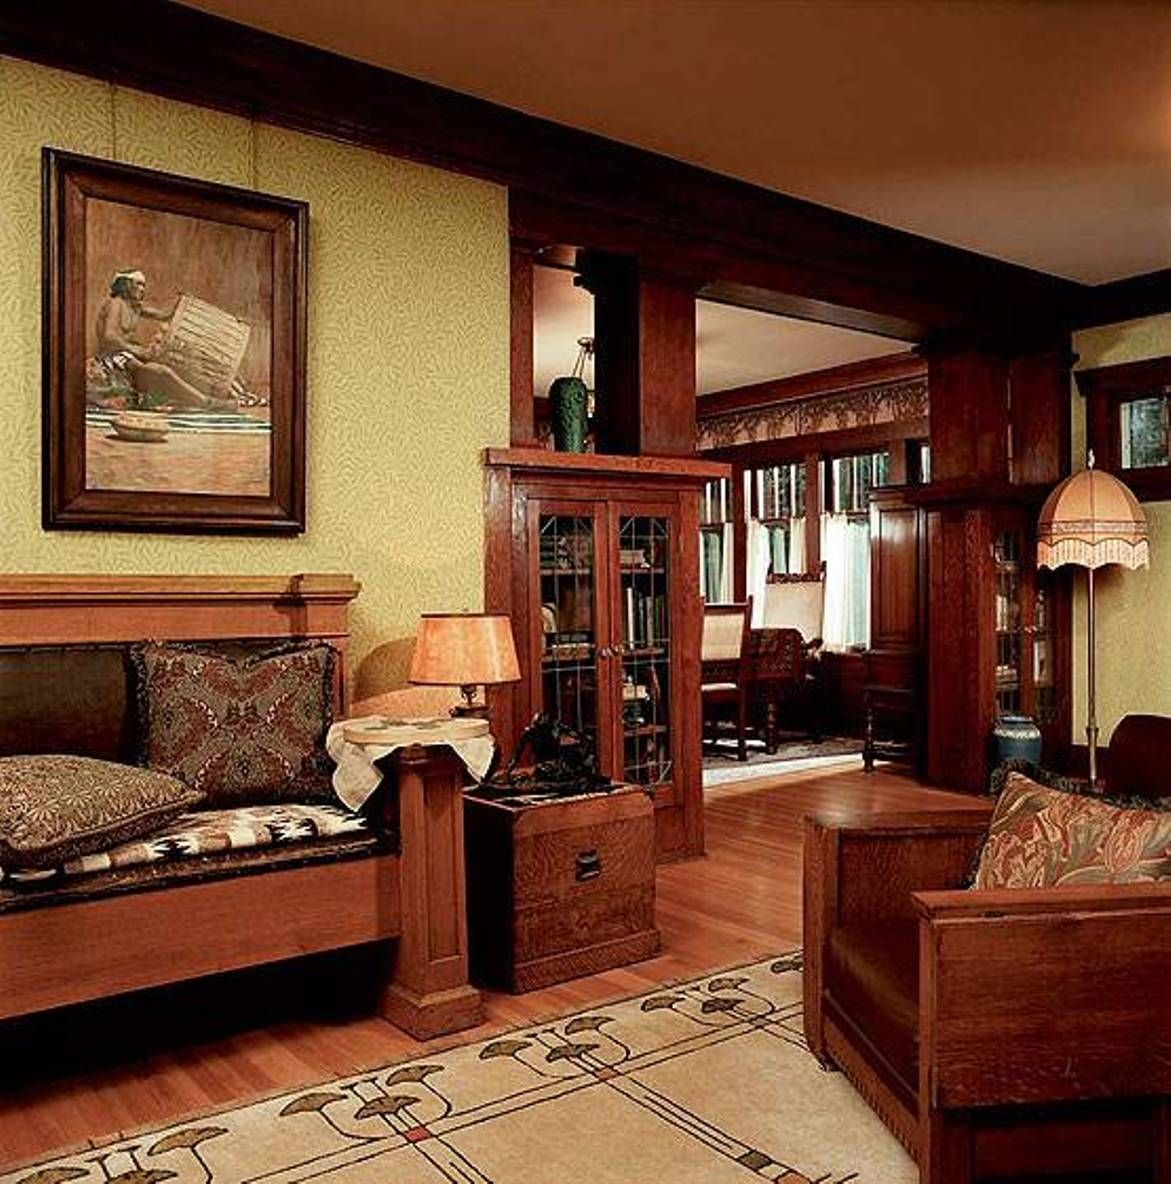 Home design and decor craftsman interior decorating Craftsman home interior